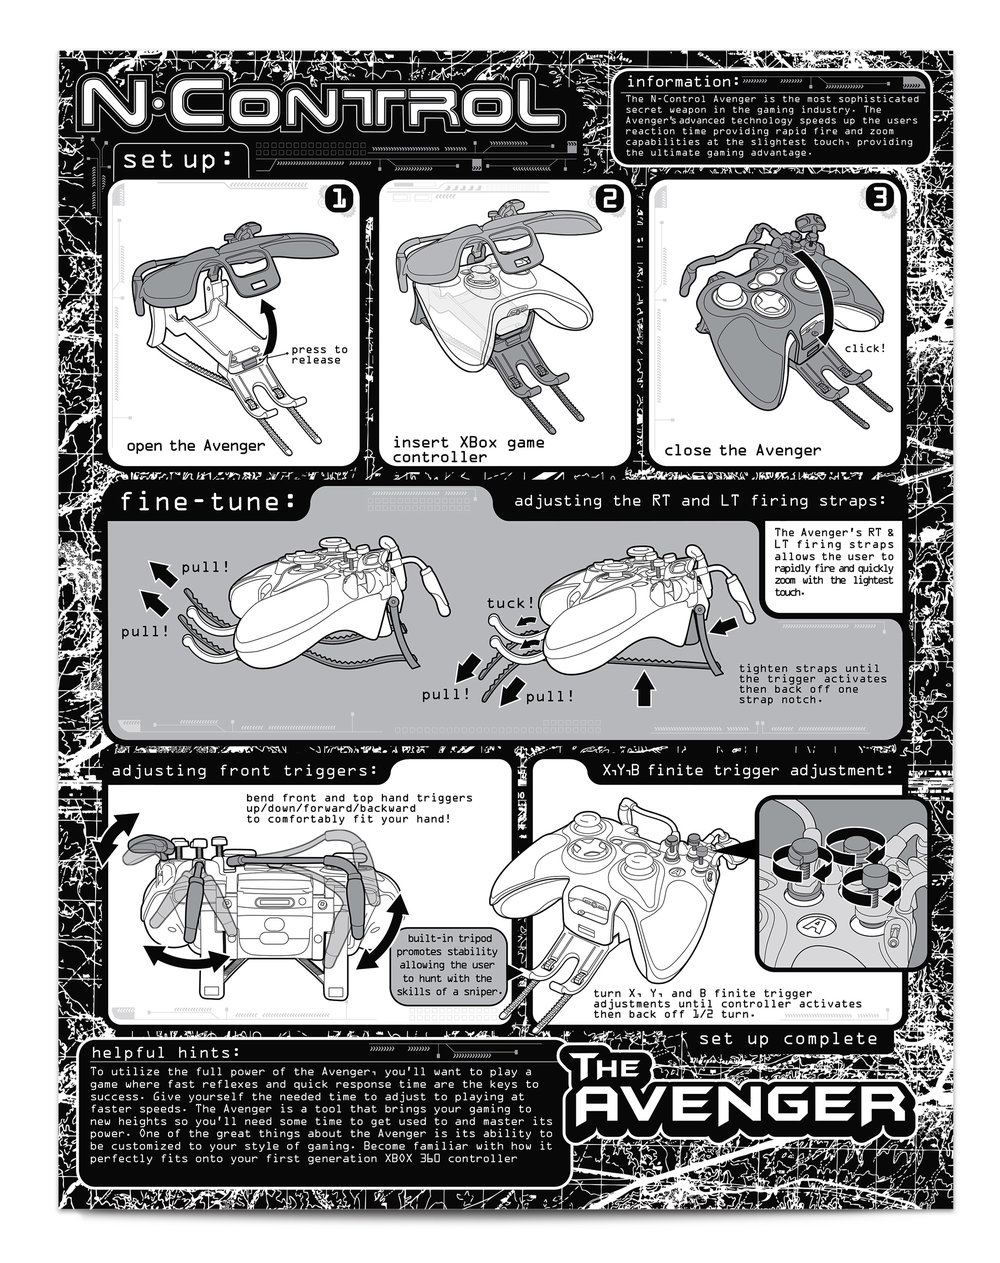 Avenger-Instruction-for-web.jpg